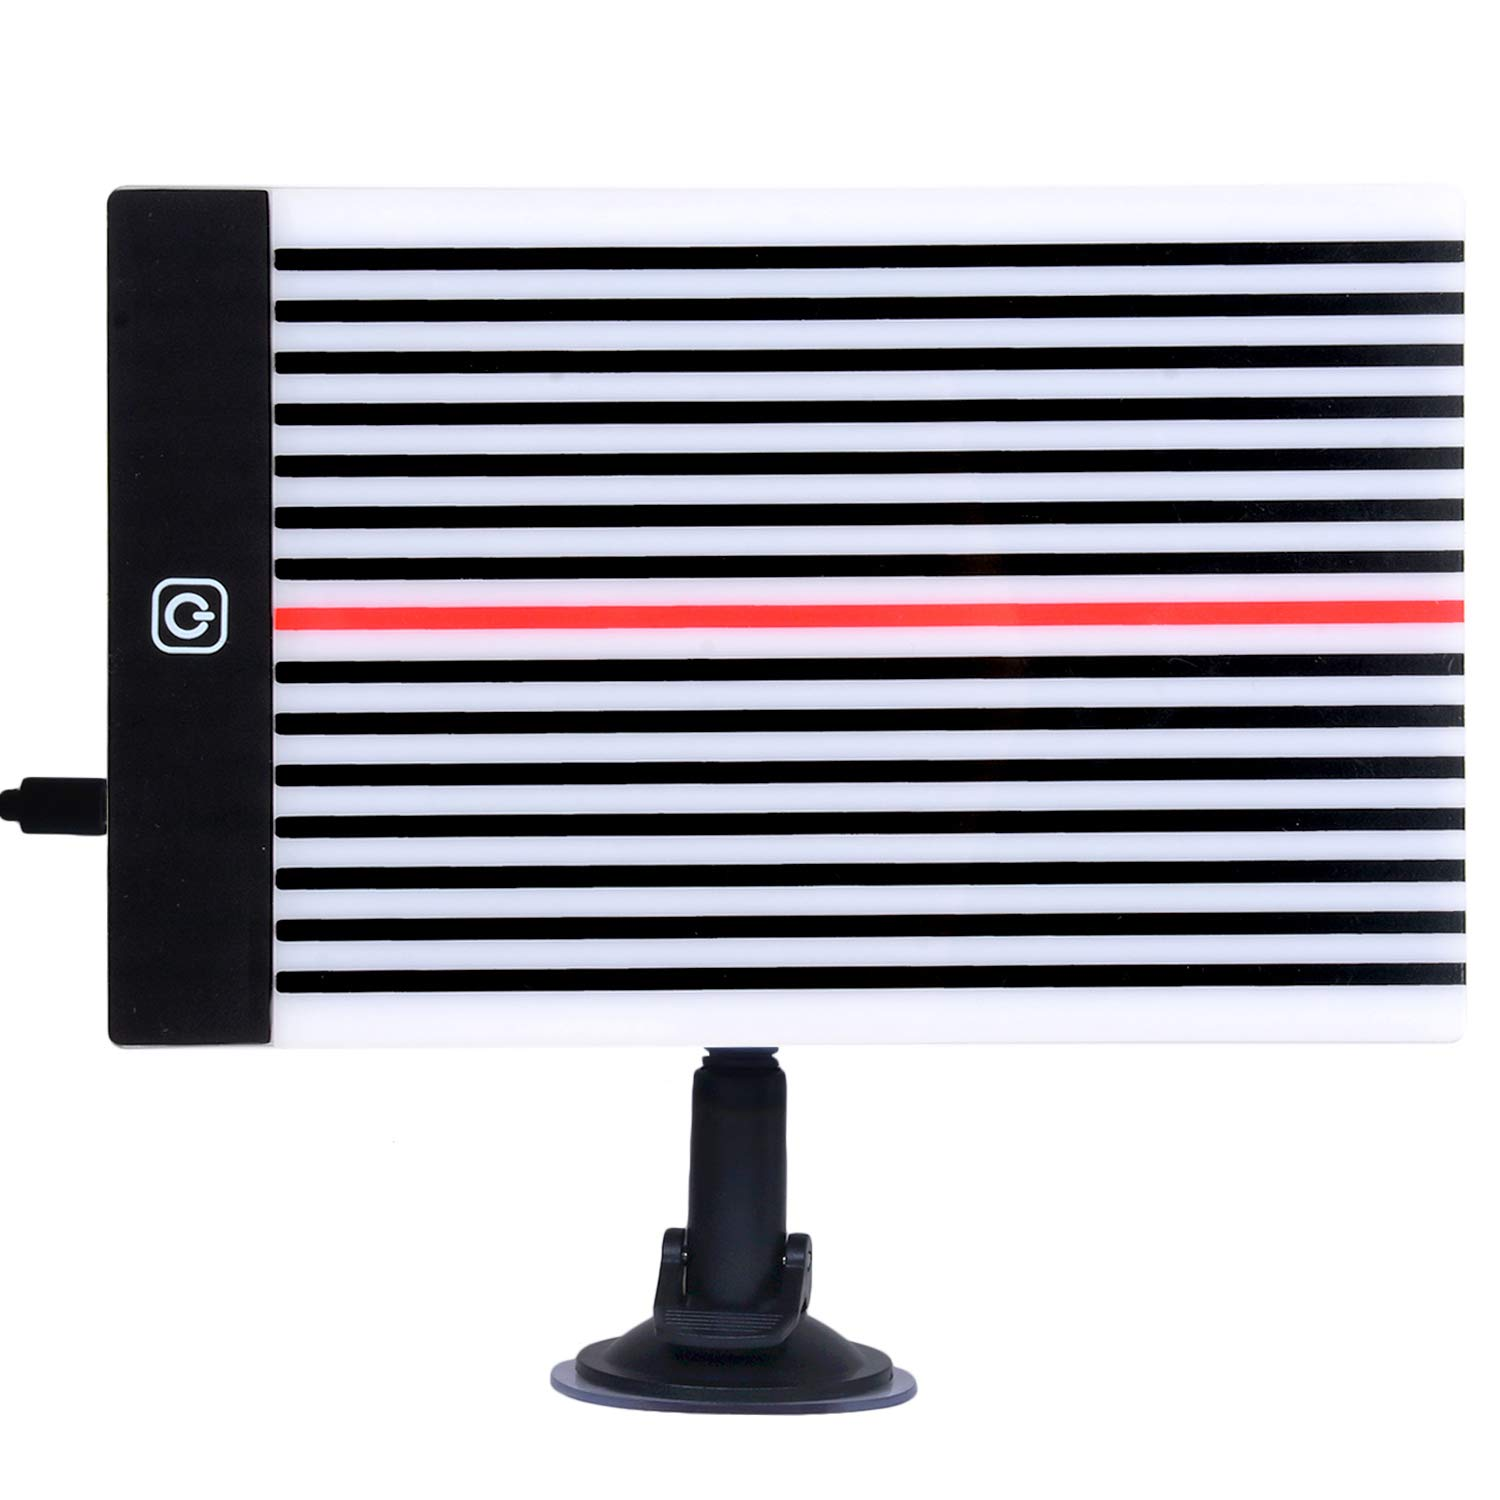 LED Line Board Kit Paintless Touch Mode Stripe Reflector Board Dent Repair Tool